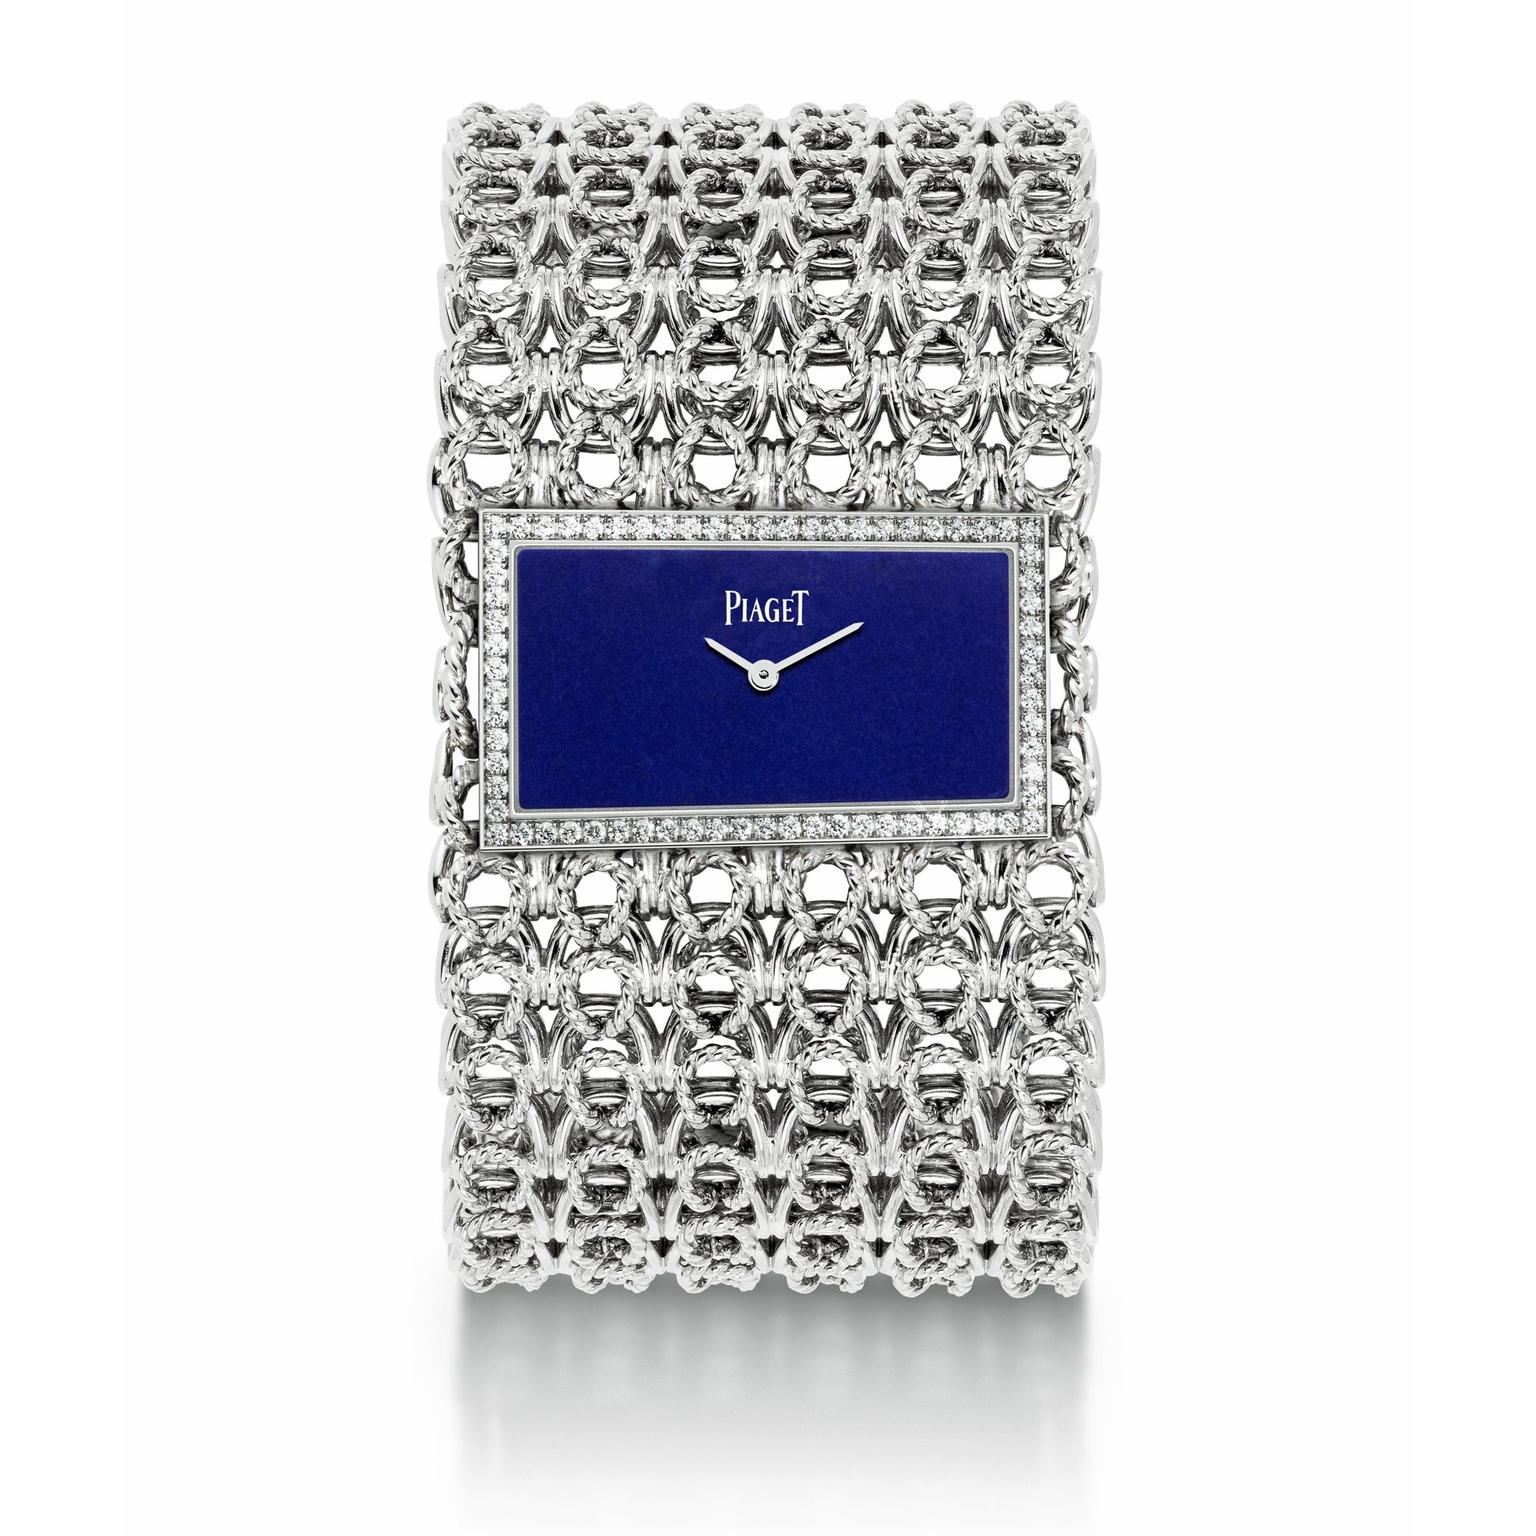 Piaget cuff watch in white gold with a lapis lazuli dial